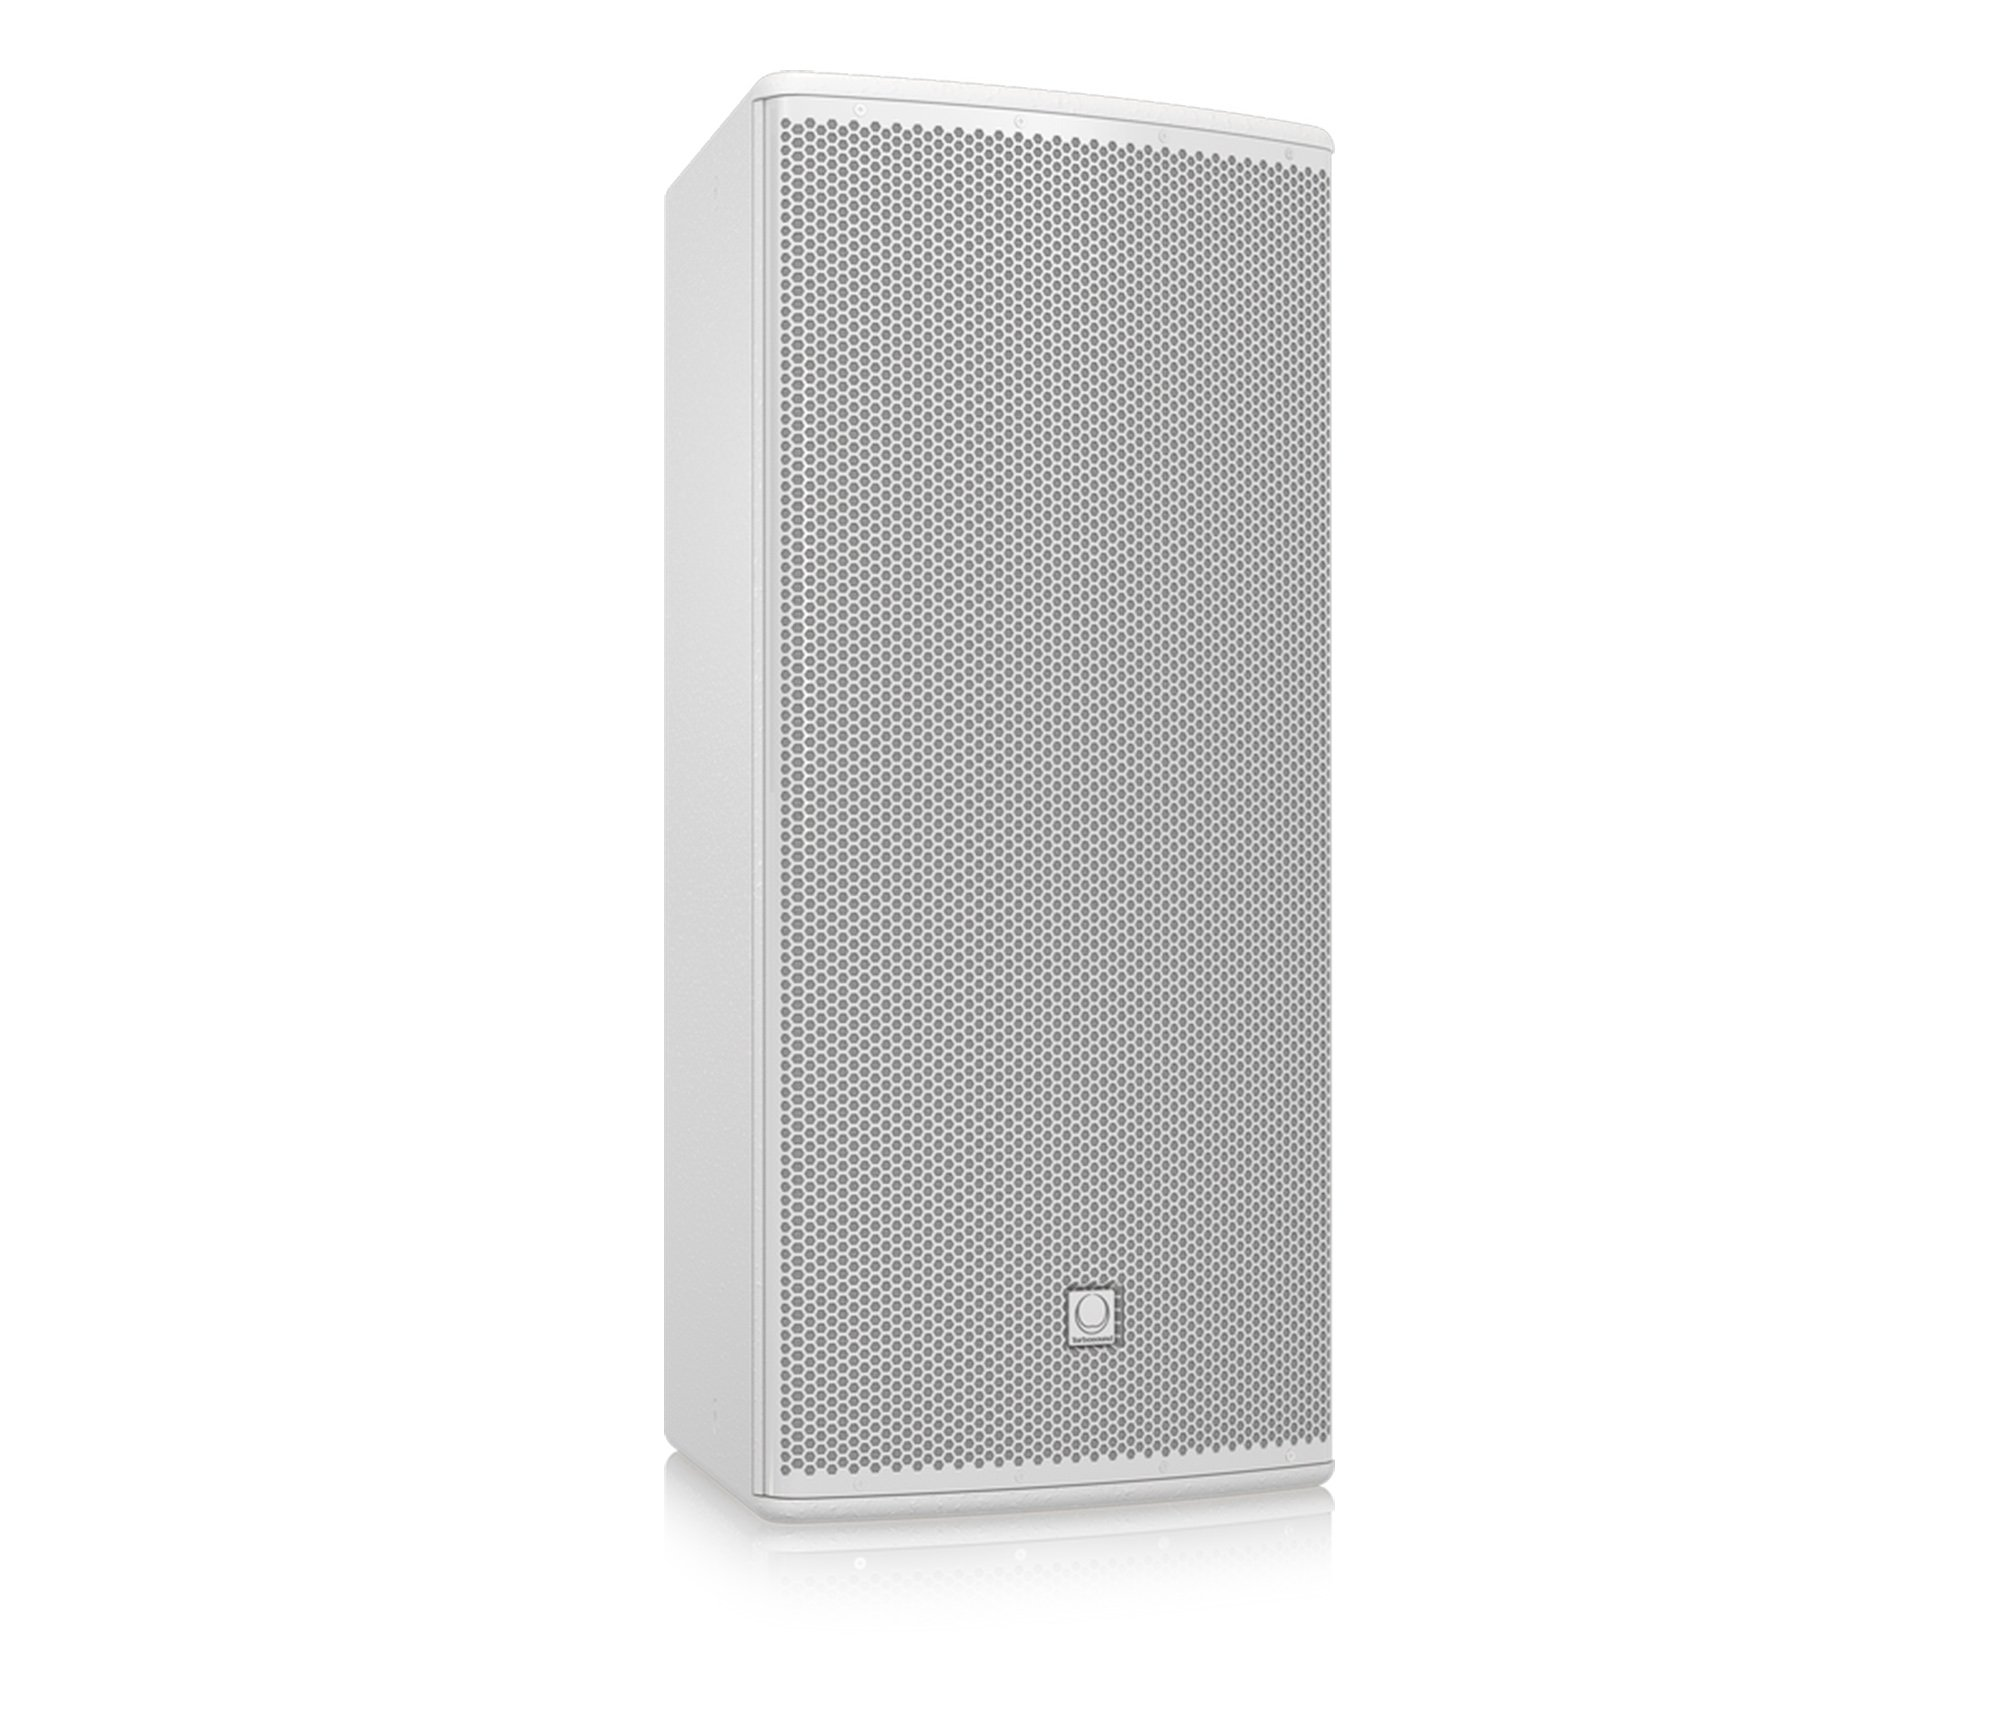 "12"" 600W (8 Ohms) 2-Way Full-Range Passive/Bi-Amp Loudspeaker with Klark Teknik DSP, ULTRANET Networking, and 60°x40° Dispersion in White"